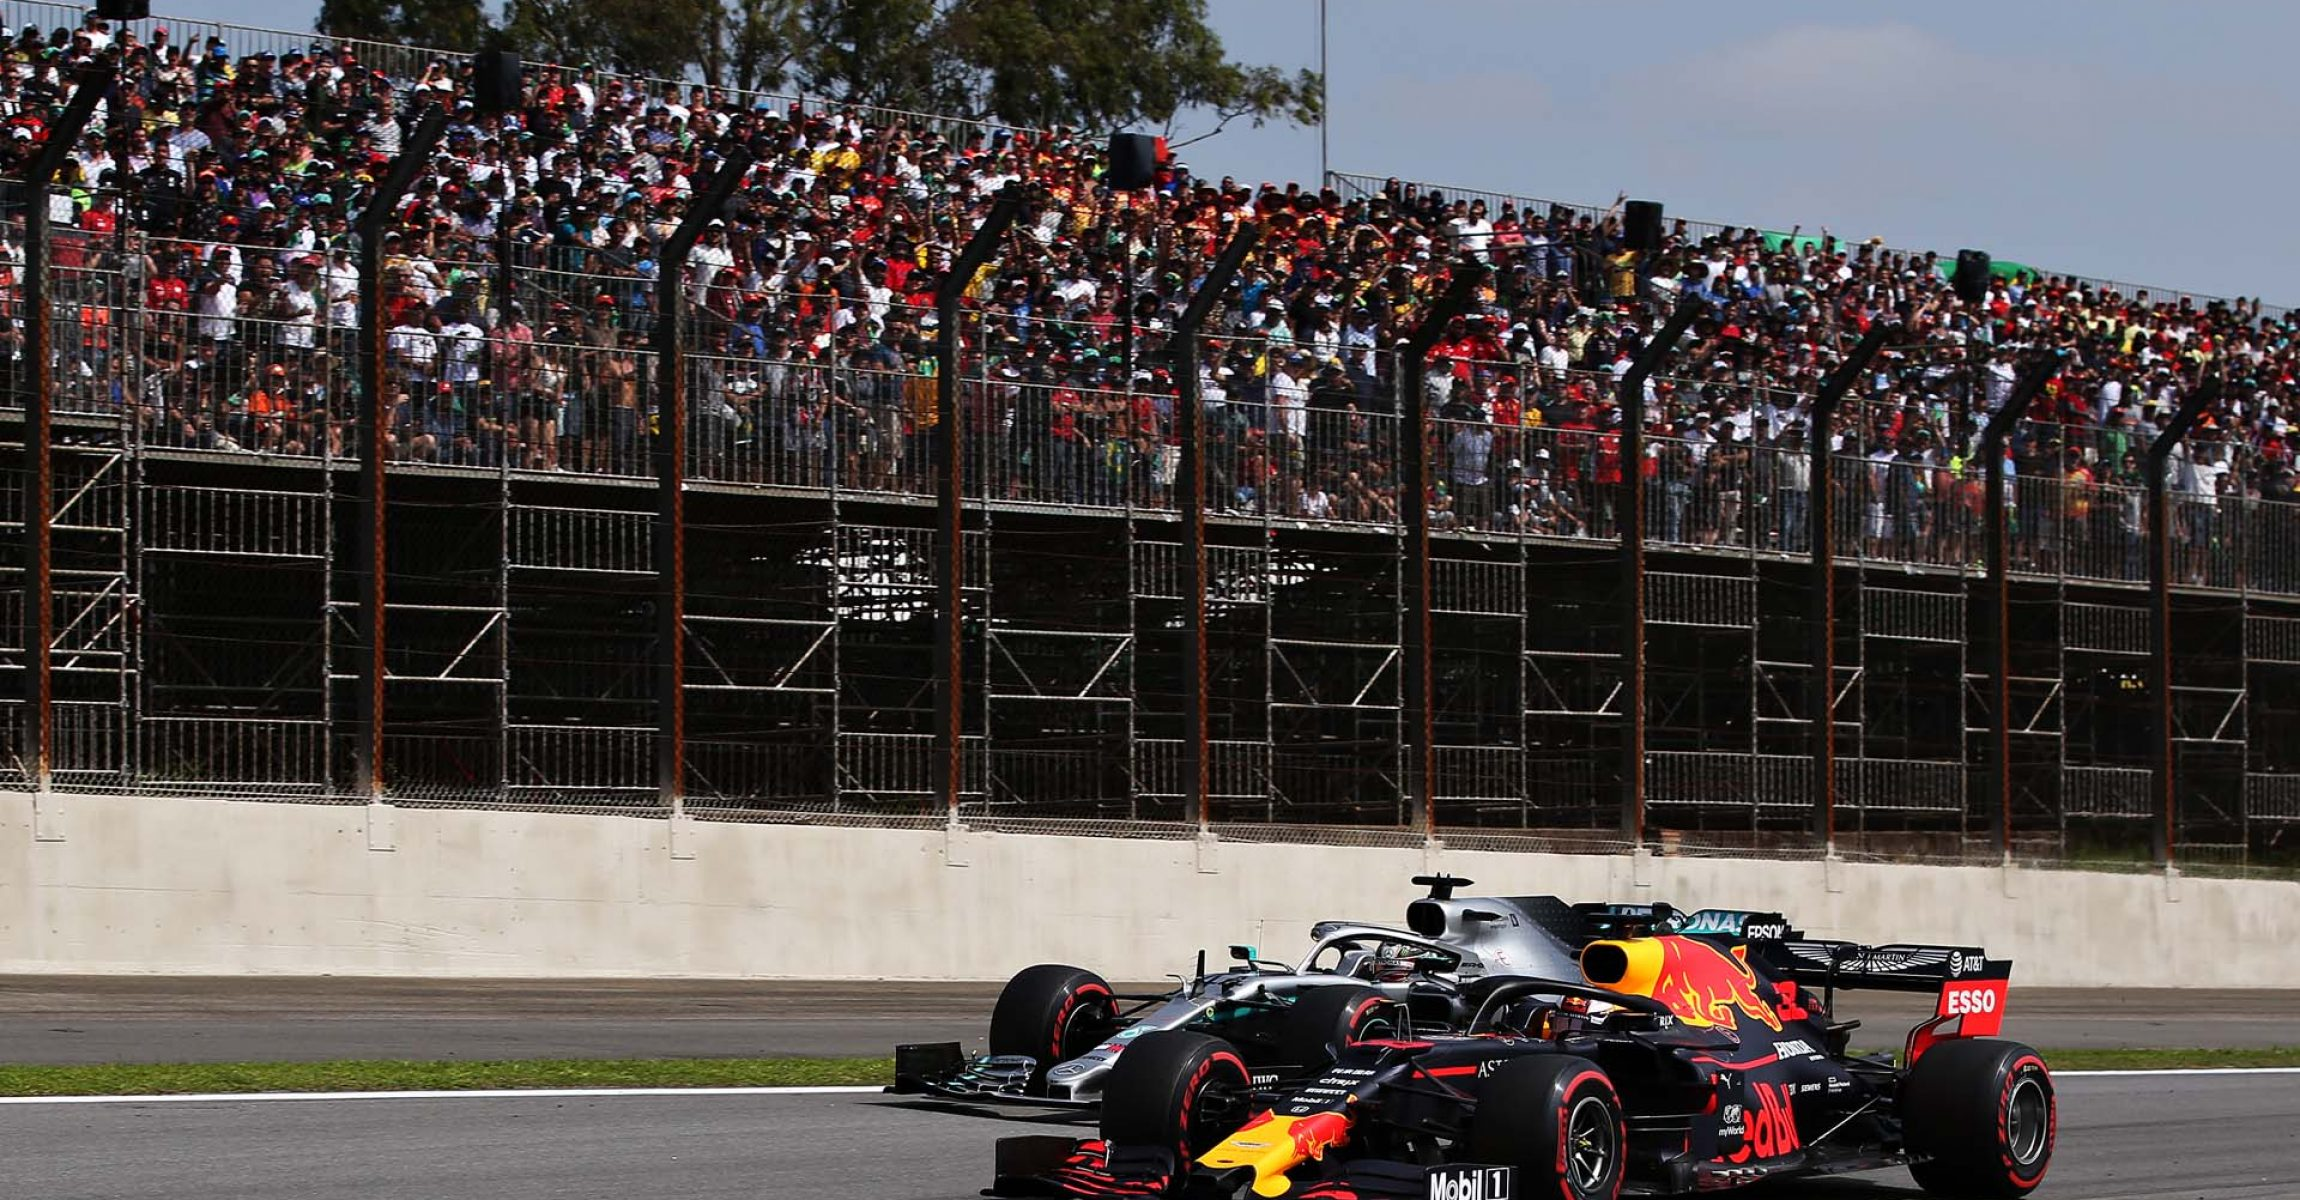 SAO PAULO, BRAZIL - NOVEMBER 17: Max Verstappen of the Netherlands driving the (33) Aston Martin Red Bull Racing RB15 leads Lewis Hamilton of Great Britain driving the (44) Mercedes AMG Petronas F1 Team Mercedes W10 on track during the F1 Grand Prix of Brazil at Autodromo Jose Carlos Pace on November 17, 2019 in Sao Paulo, Brazil. (Photo by Charles Coates/Getty Images) // Getty Images / Red Bull Content Pool // AP-227D2TTXS1W11 // Usage for editorial use only //